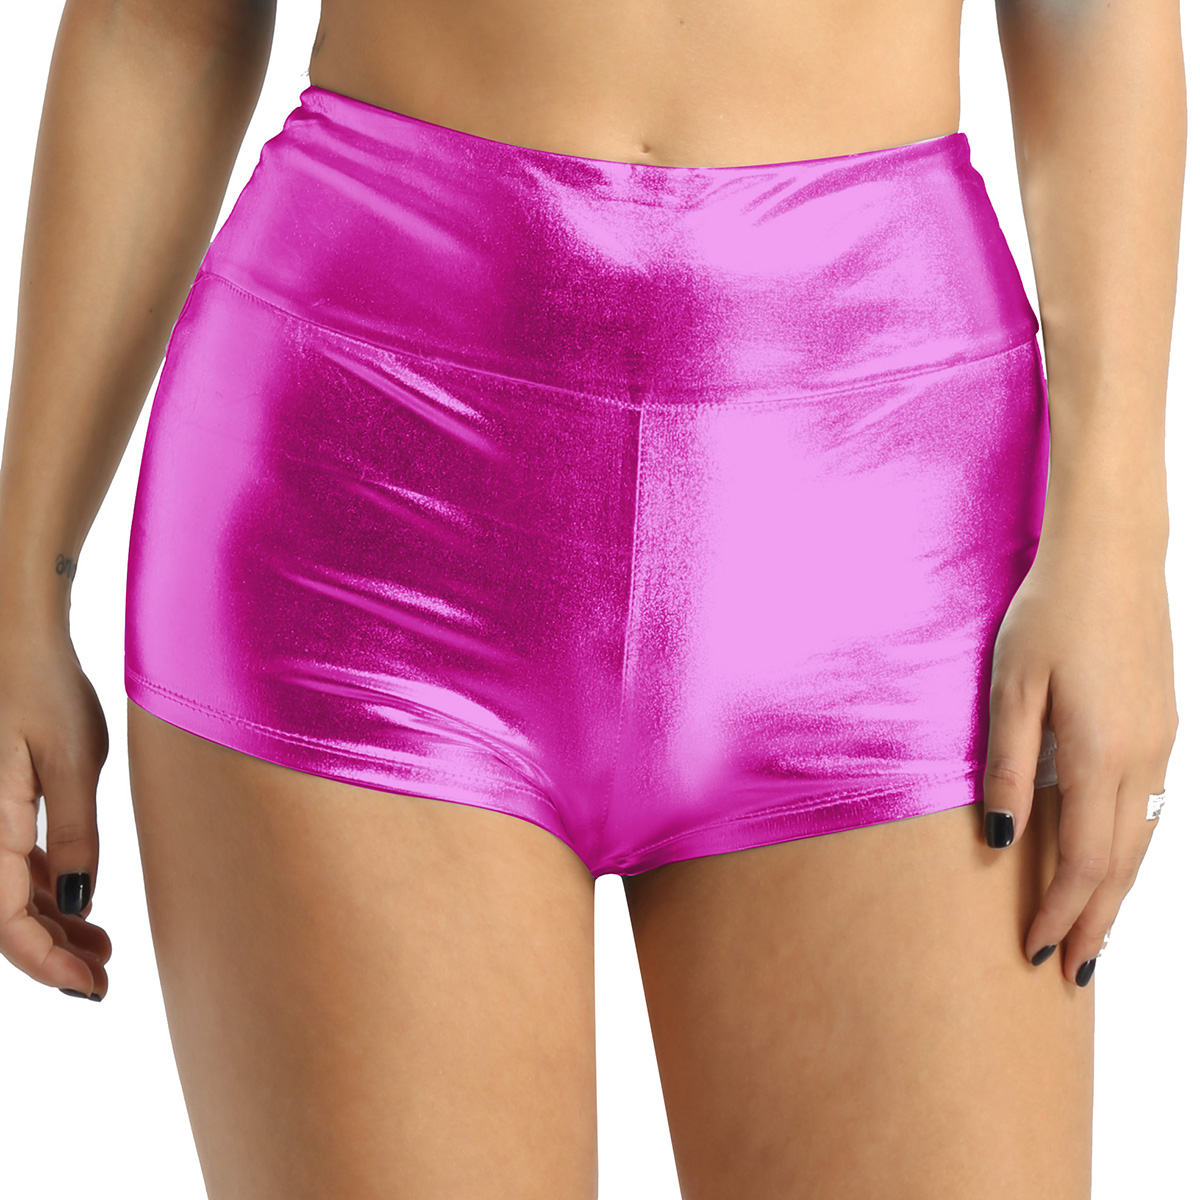 Women's Pole Dance Shorts Rave Clothes Shiny High-waisted Pole Dance Gymnastics Workout Rave Clothing Shorts Bottoms For Sports